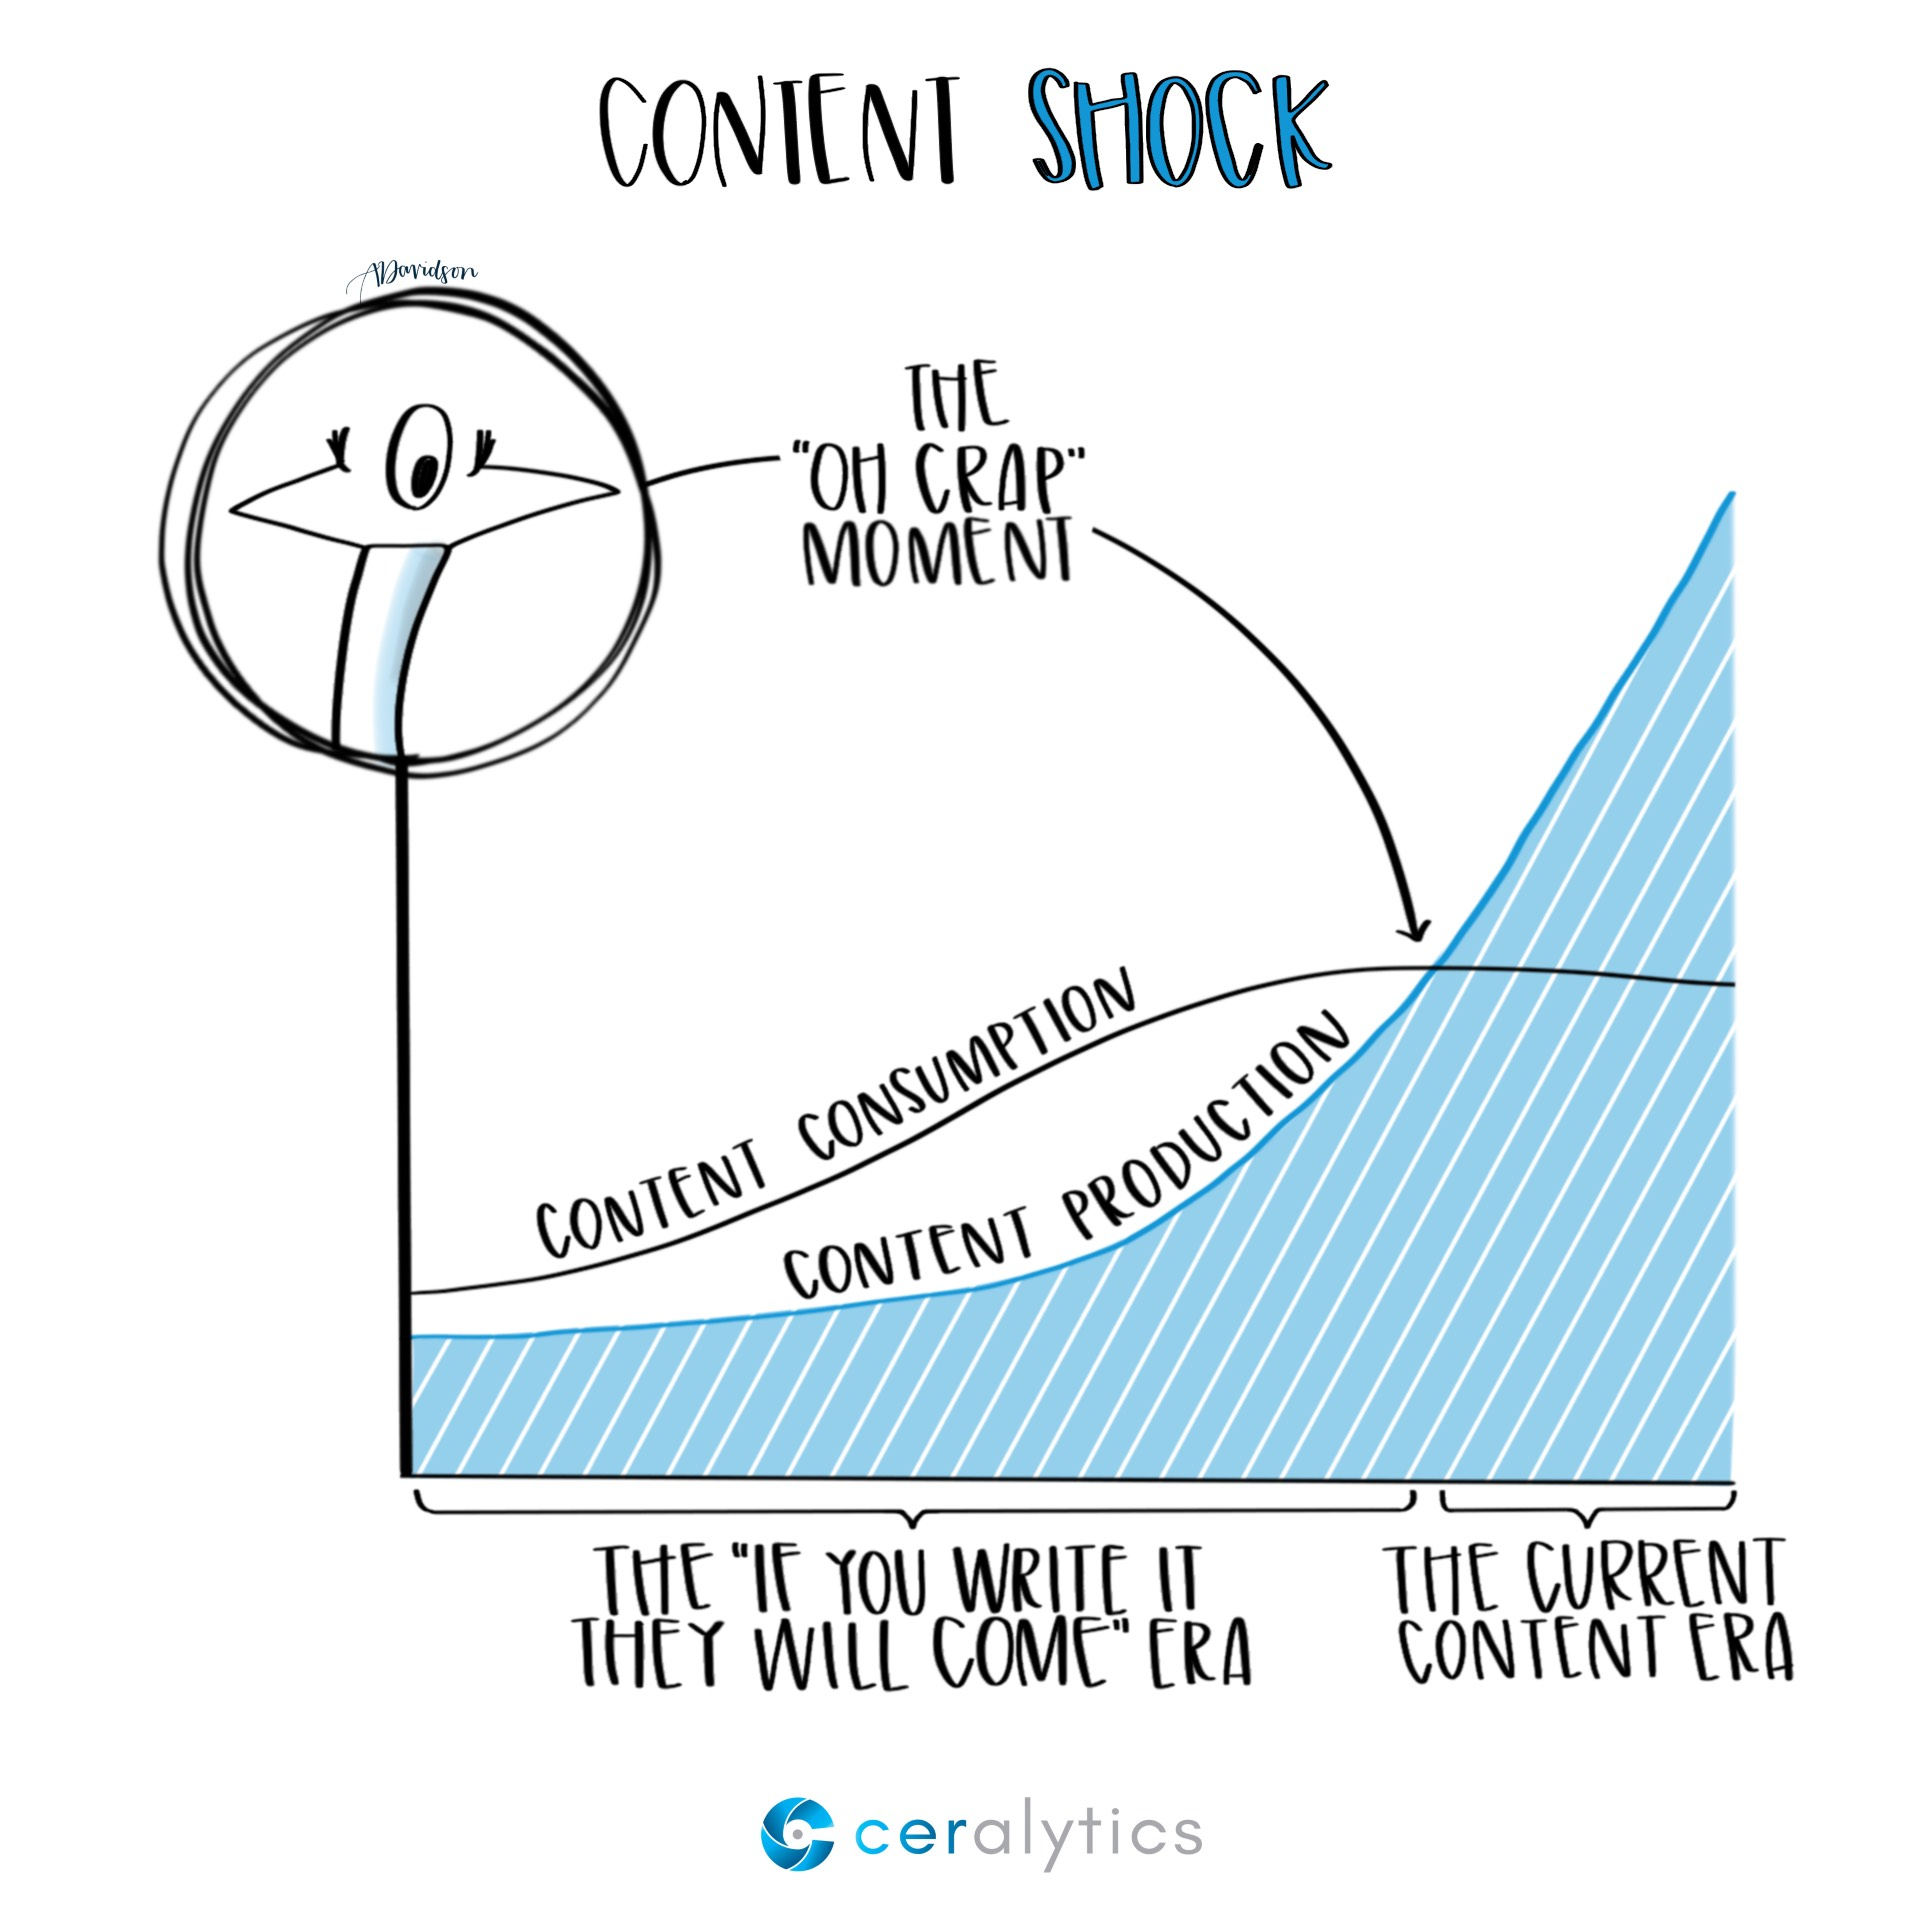 What is content shock